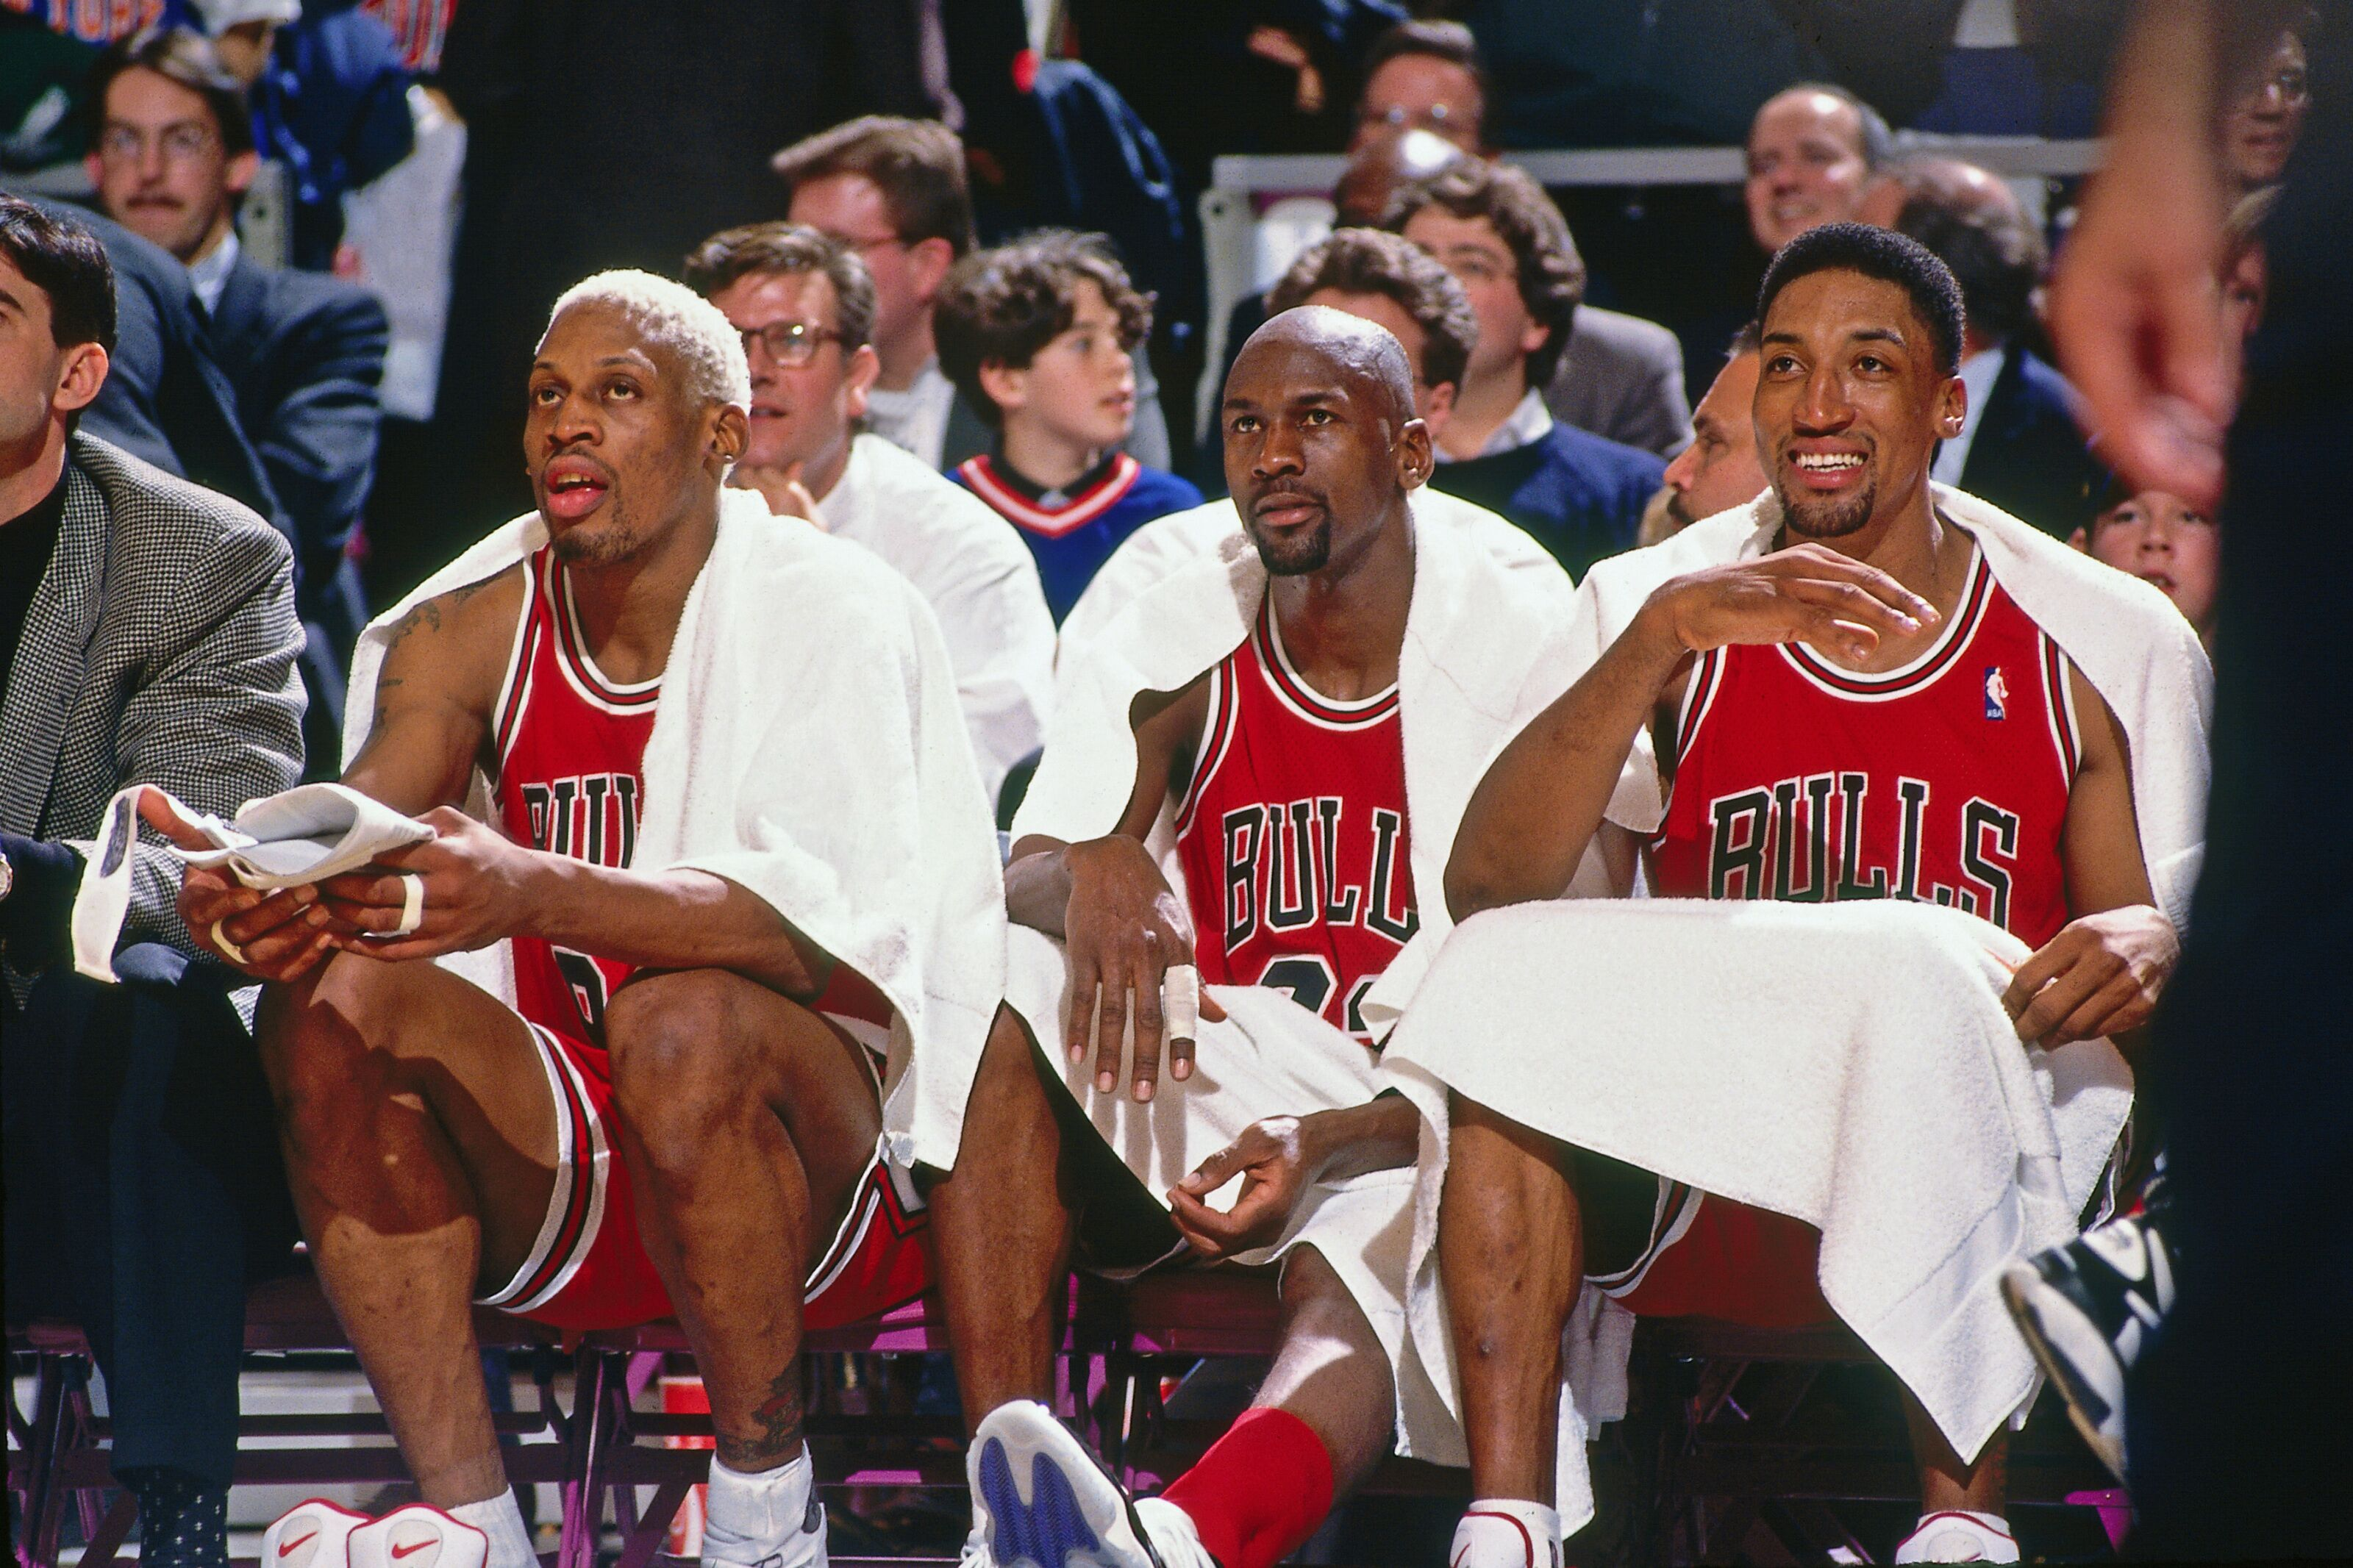 Chicago Bulls: Greatest moments in franchise history summed up